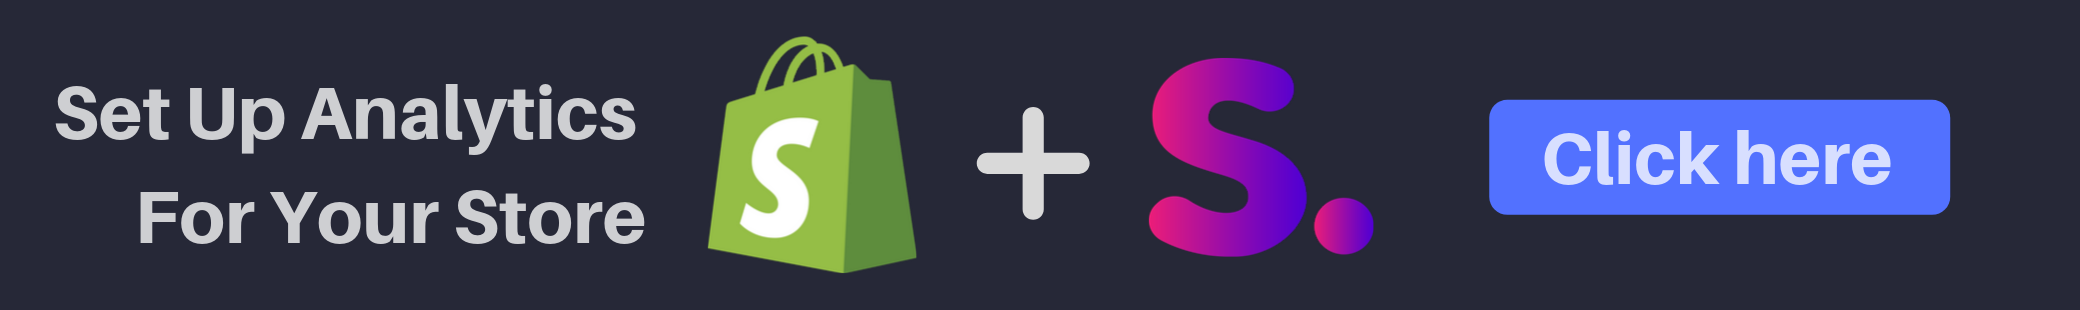 Manage your Ad platforms in one place on Shoppr's Analytics Platform